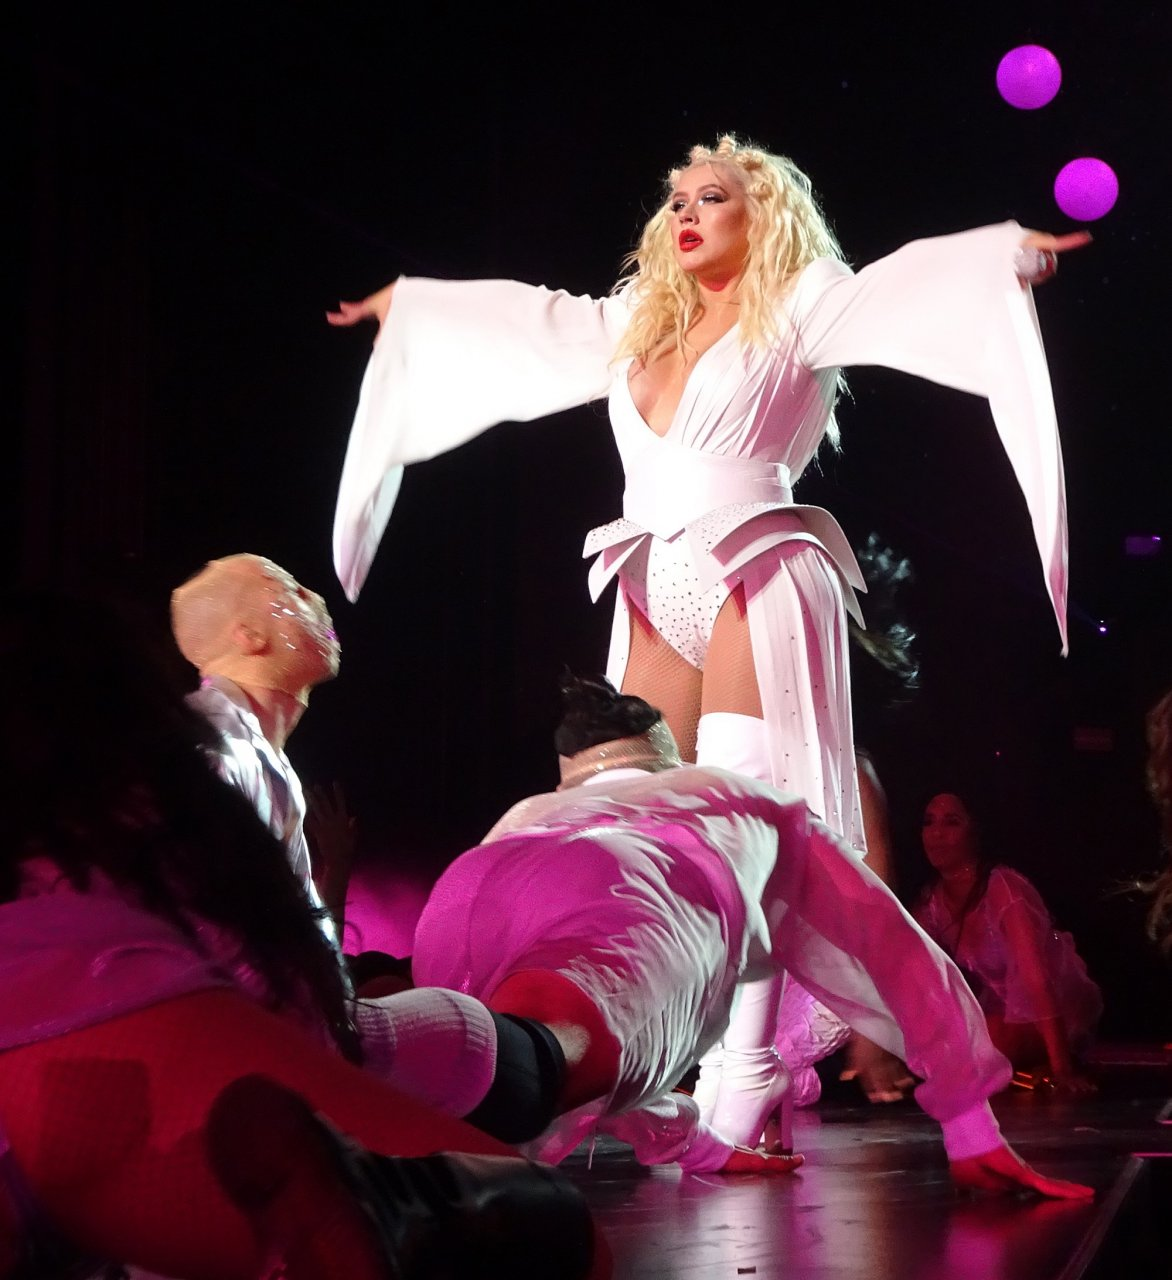 Christina Aguilera has her pasties showing under her first look in all white as she performed for the crowd at her 1st residency show in Sin City